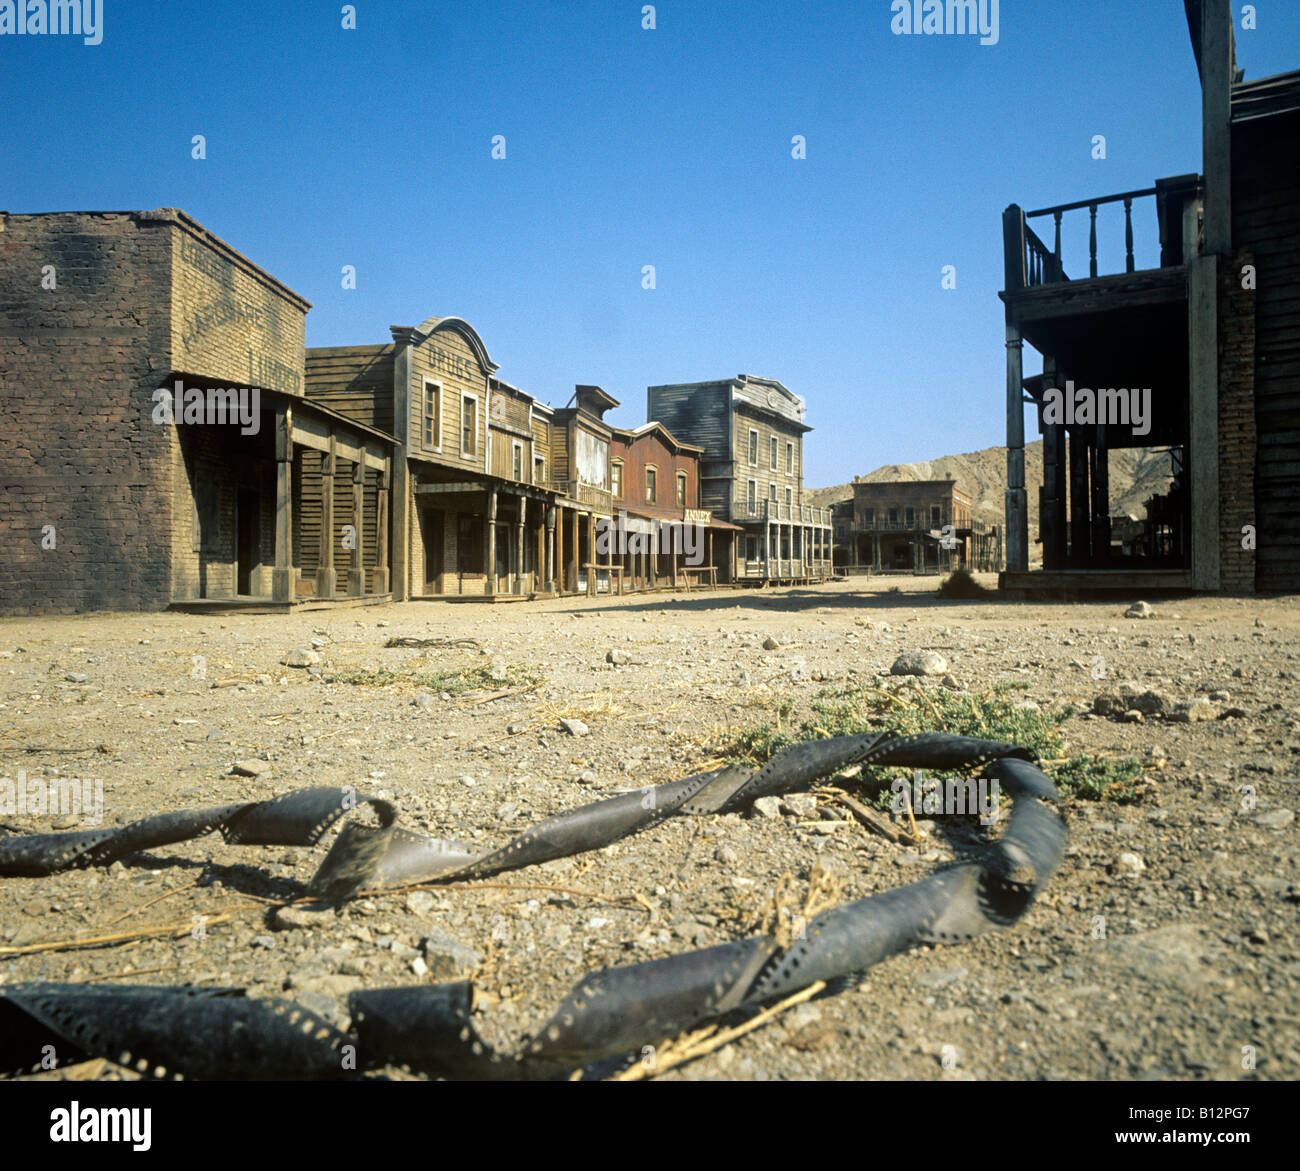 Wild West town built as a film set for some of the early Spagetti Westerns at Tabernas - Stock Image